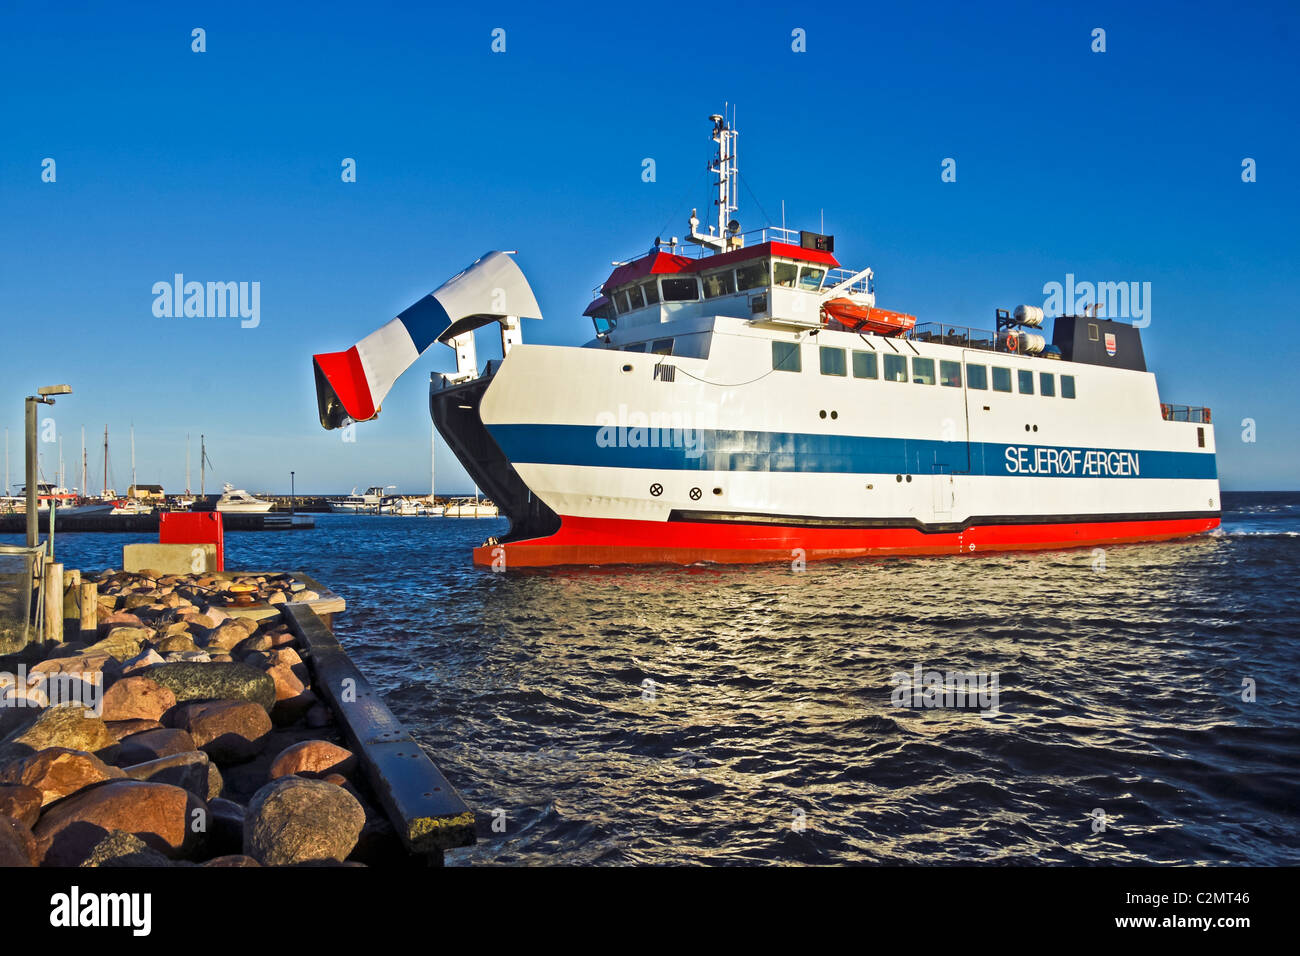 The Sejeroefaergen connecting Sejeroe with Havnsoe in Sealand is arriving at Havnsoe harbour on Sealand Denmark - Stock Image